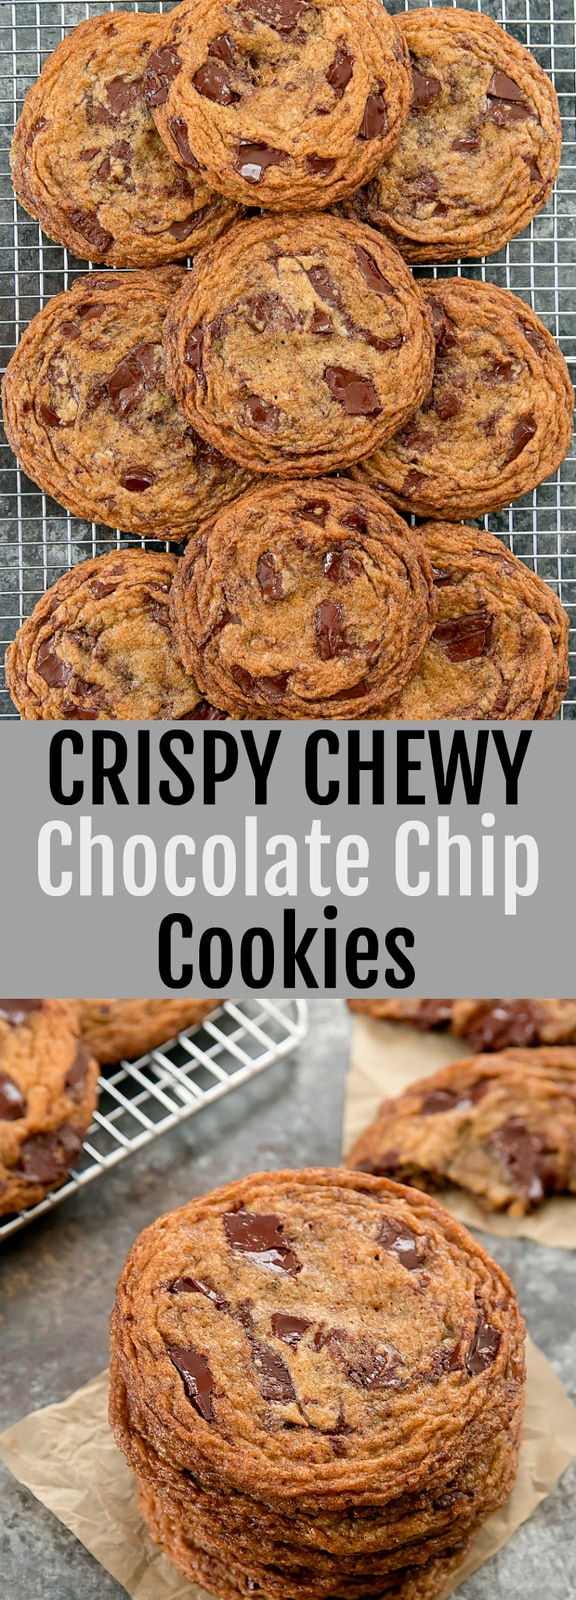 Crispy Chewy Chocolate Chip Cookies loaded with chocolate chunks. These bakery-style cookies have crinkled edges and are thin, crispy and chewy.